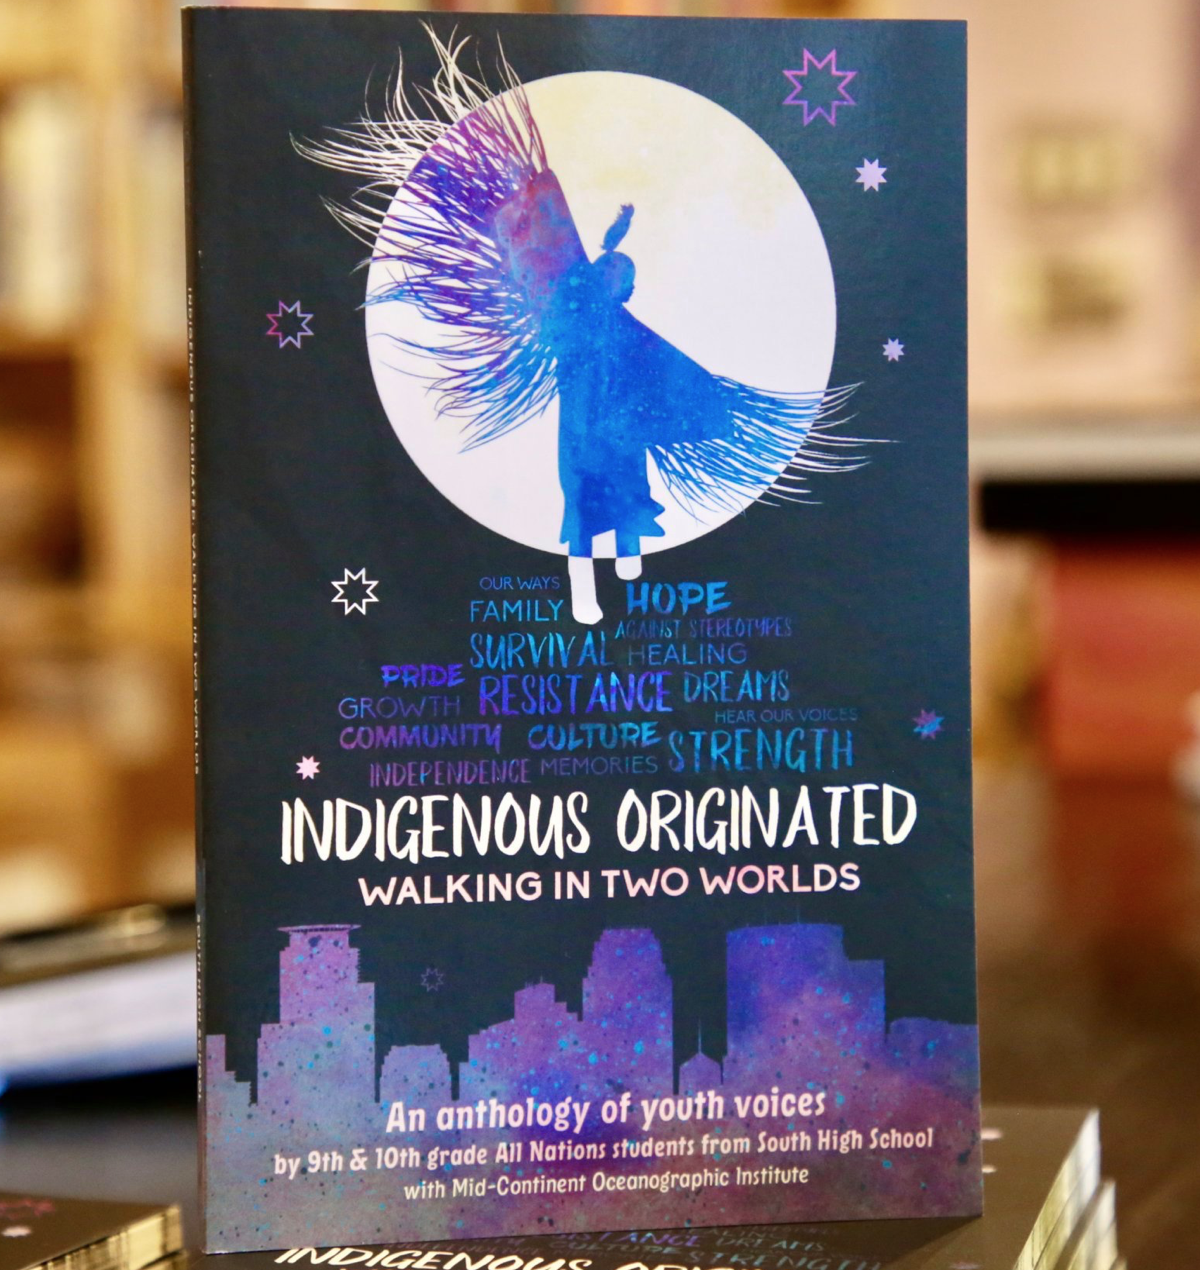 Caption: Native students from South High in Minneapolis have published a book of poetry, prose and artwork., Credit: Mid-Continent Oceanographic Institute